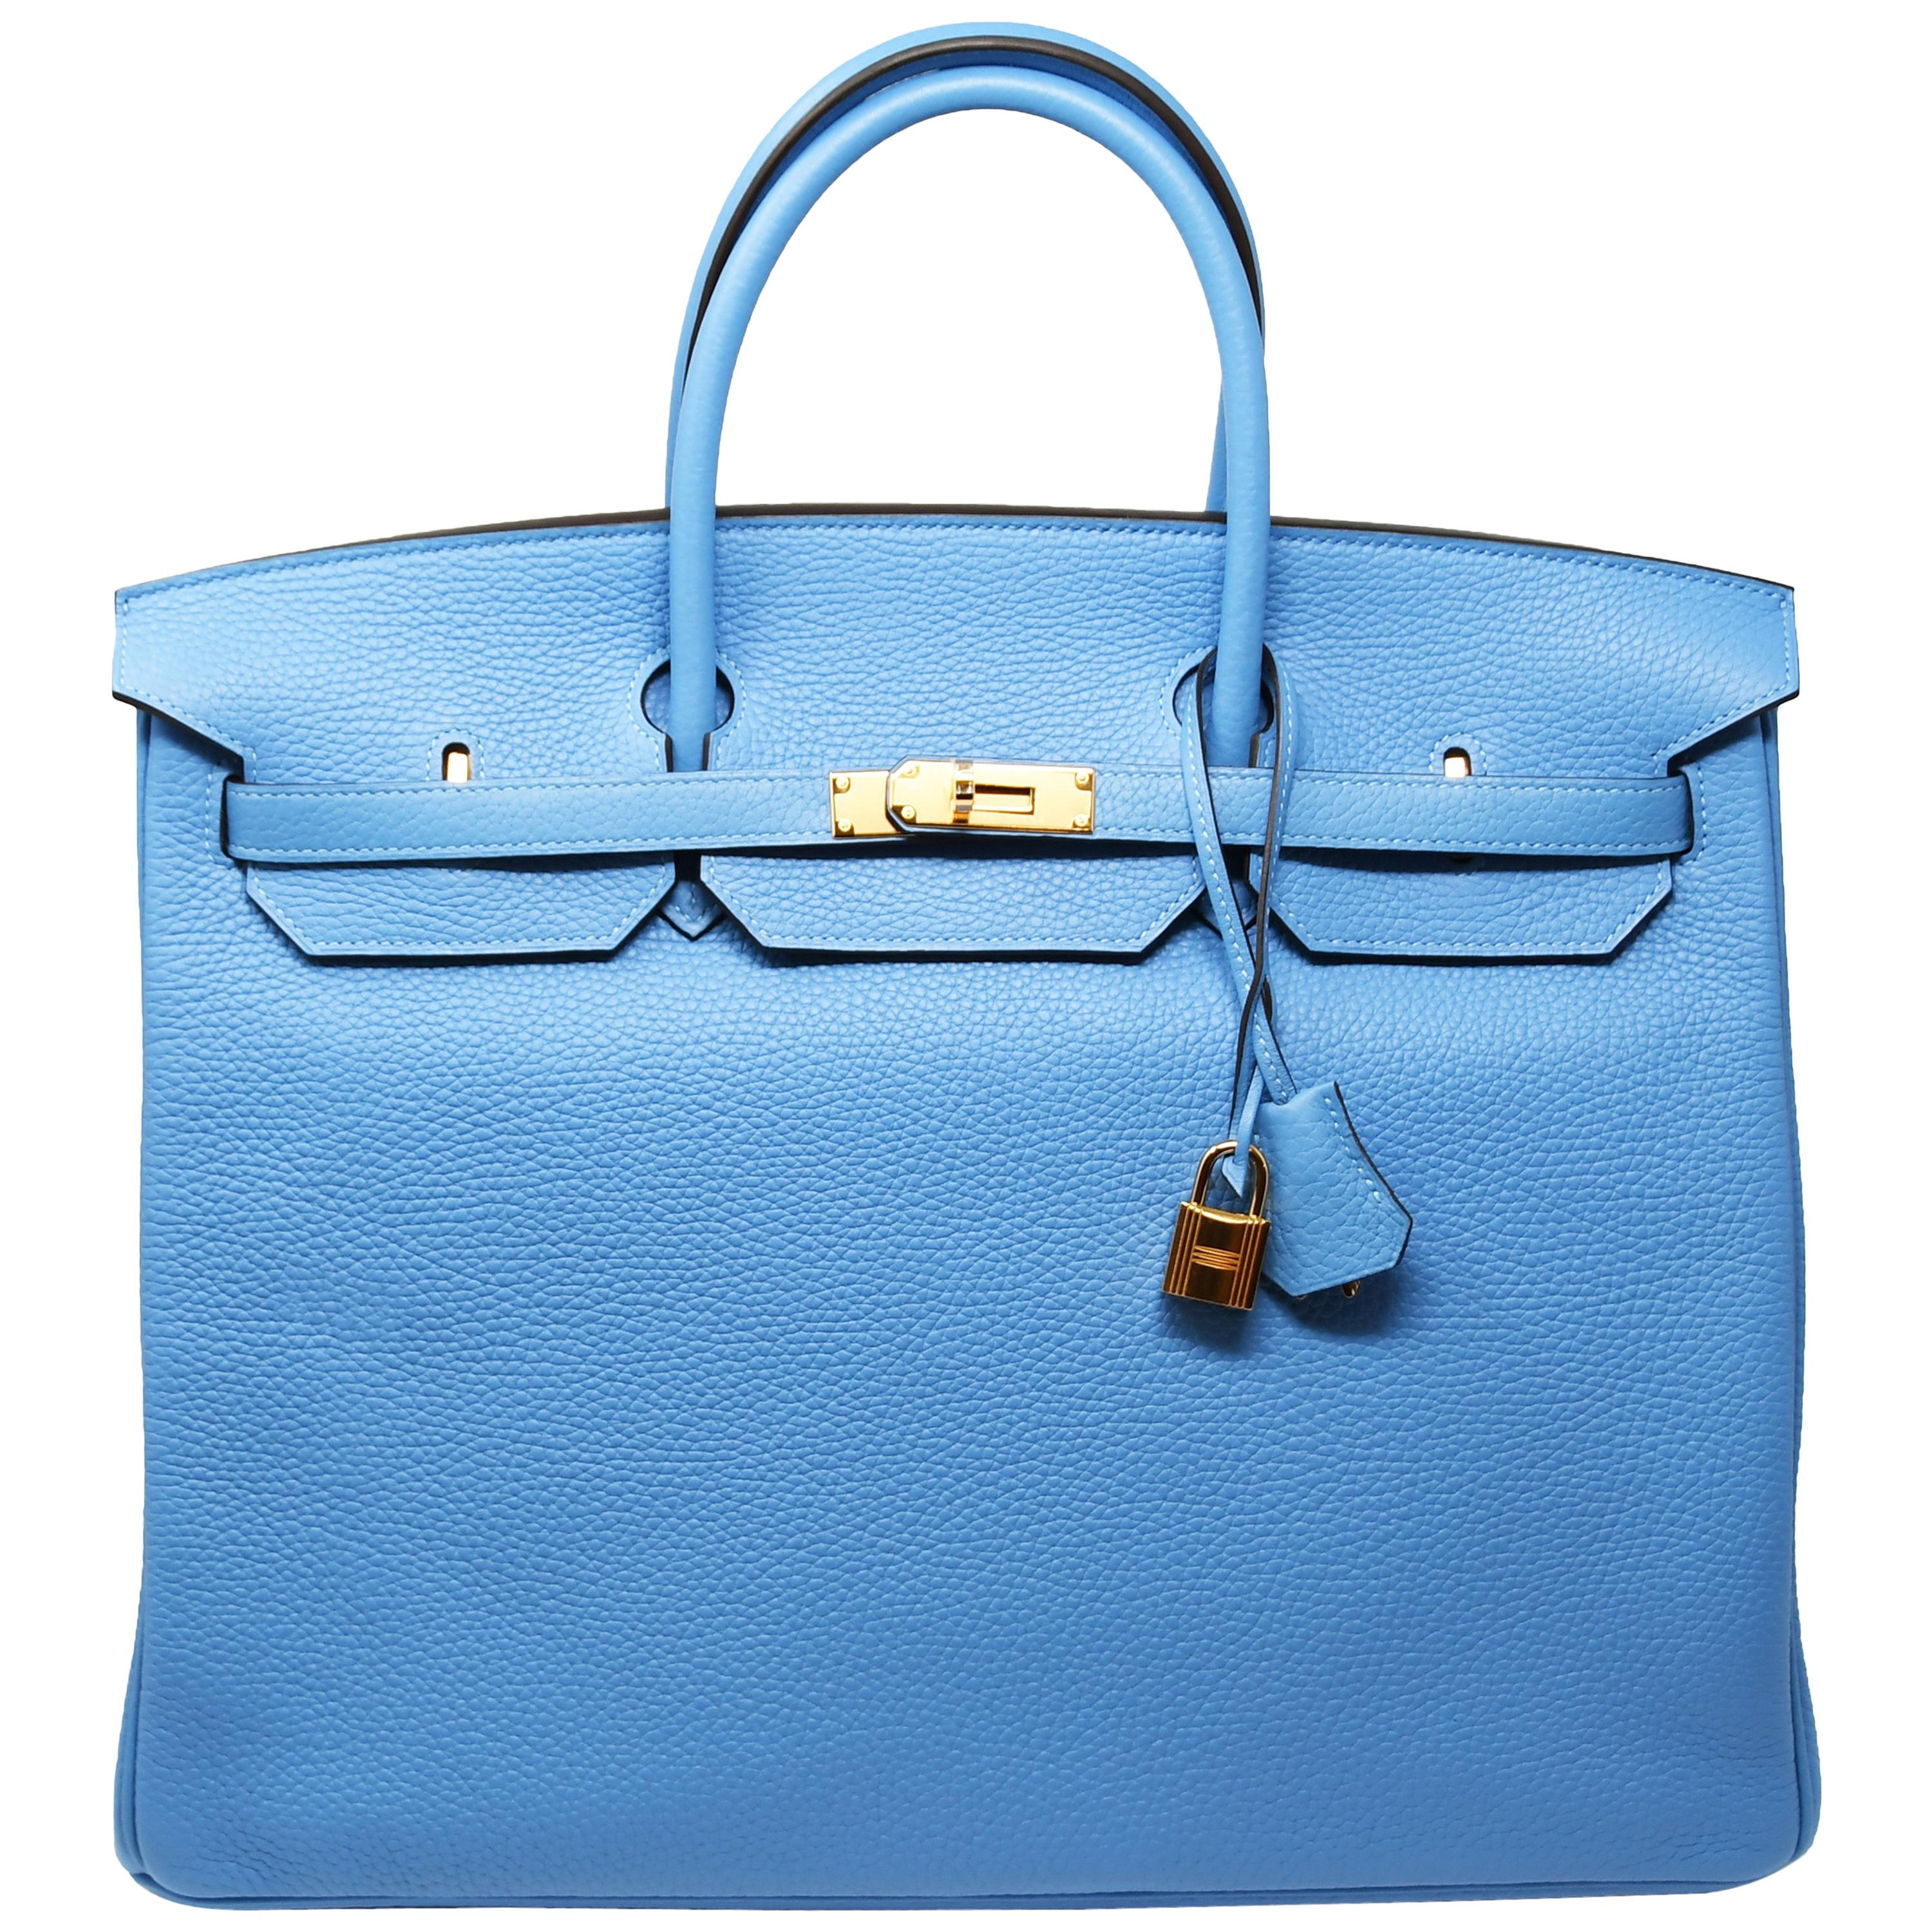 166eea43ecc8d Hermes Birkin Bag 35cm Turquoise Togo with Gold Hardware For Sale at 1stdibs